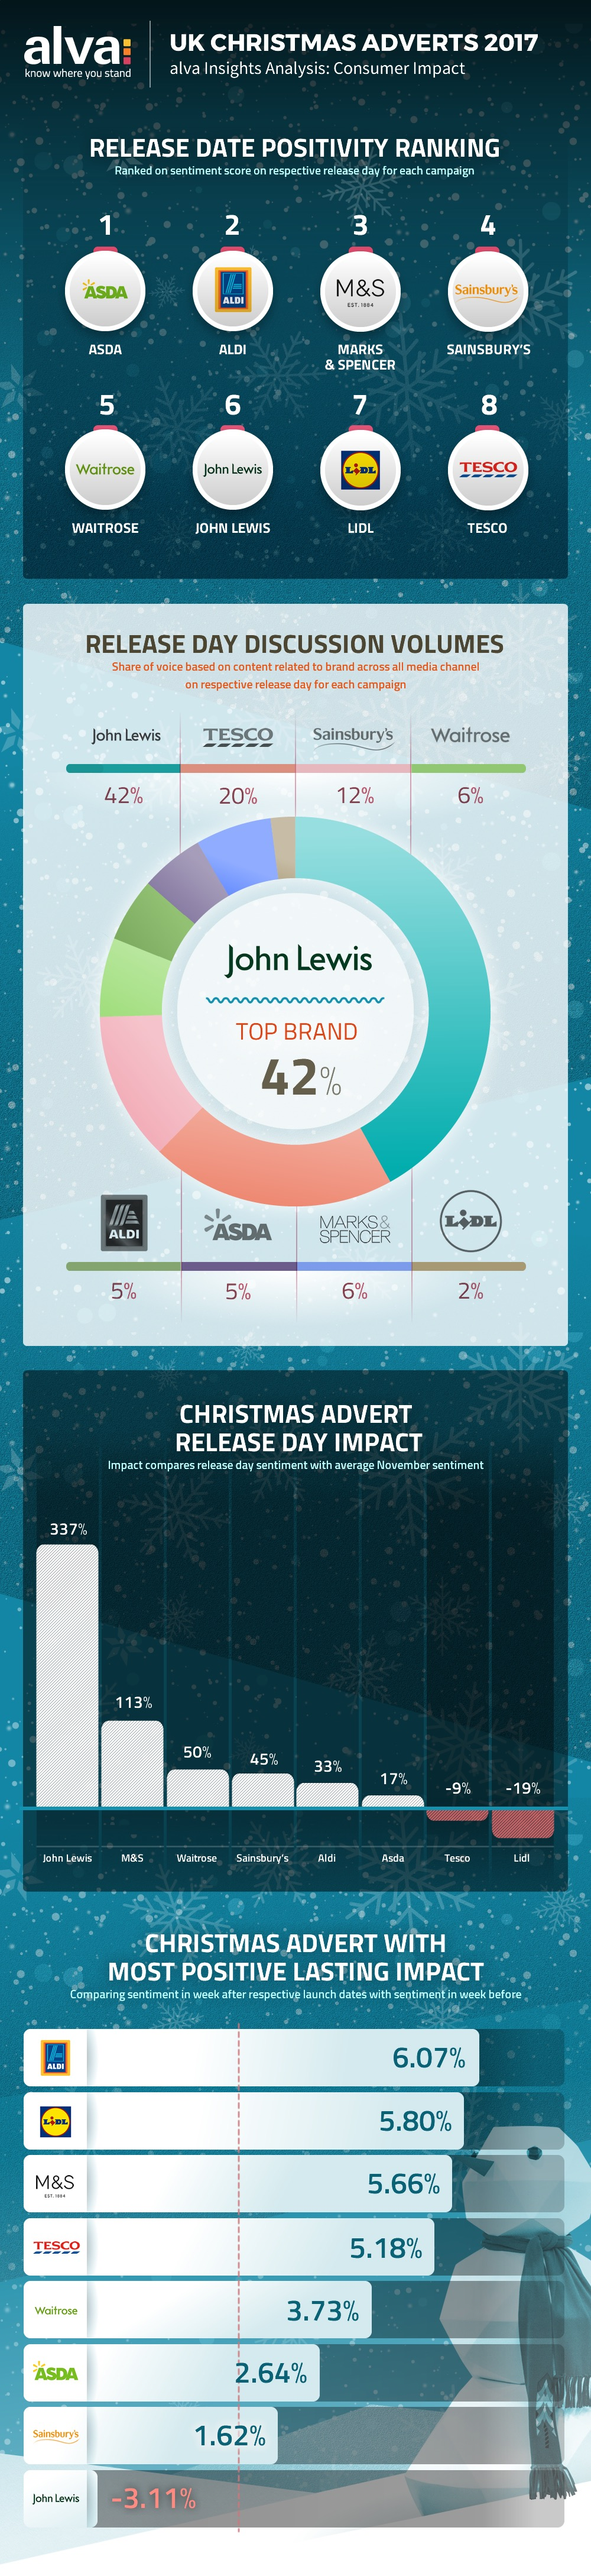 Christmas Adverts 2017 - consumer impact analysis